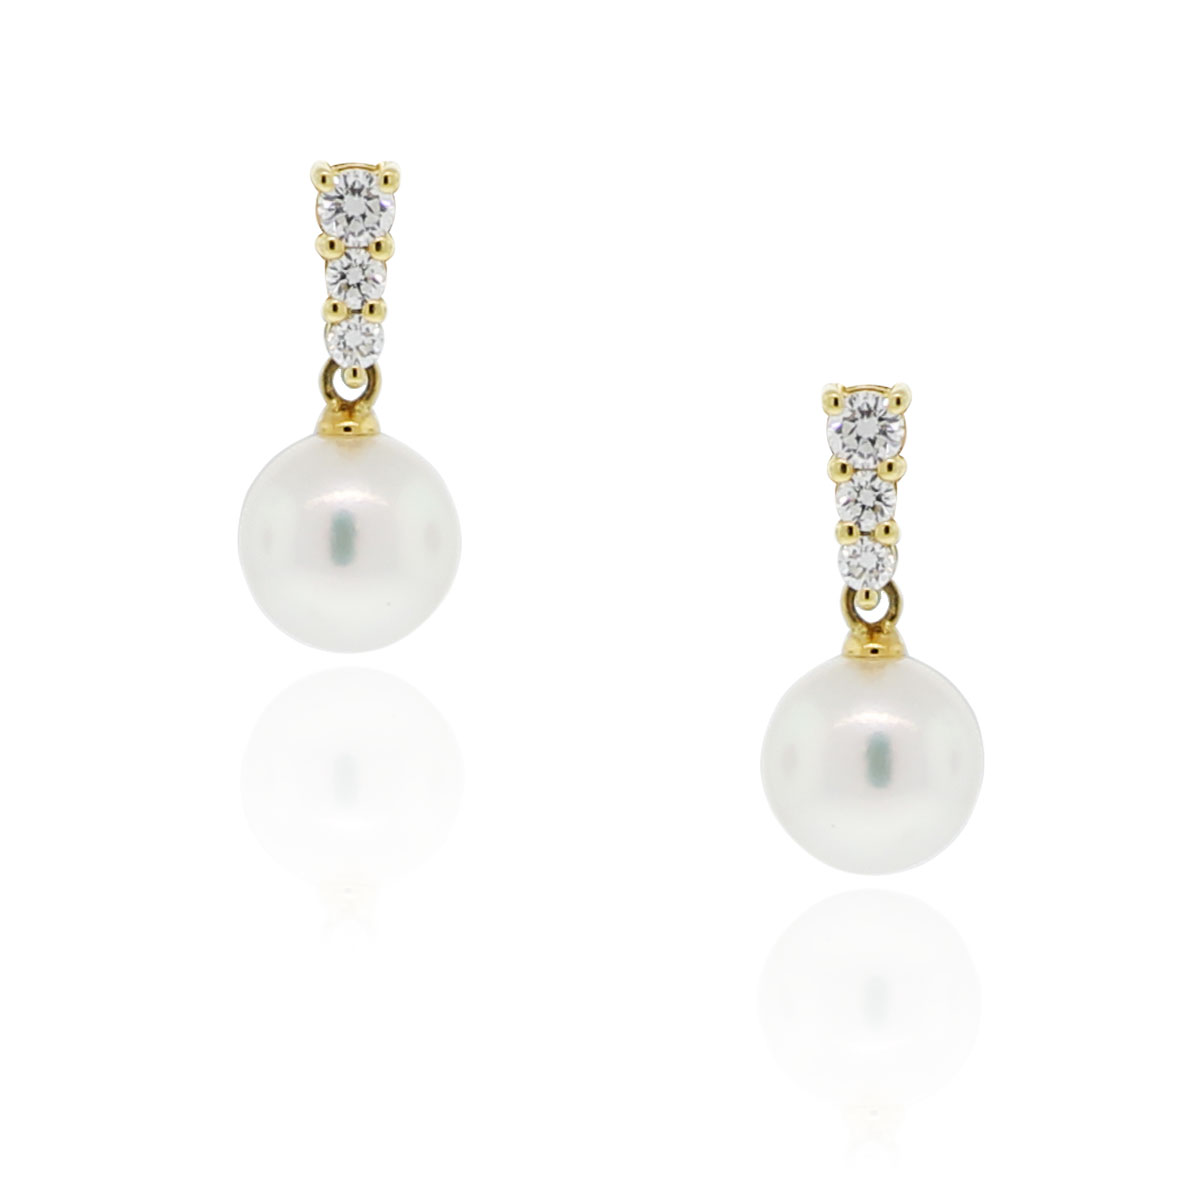 Mikimoto 18k Yellow Gold Diamond & Pearl Drop Earrings